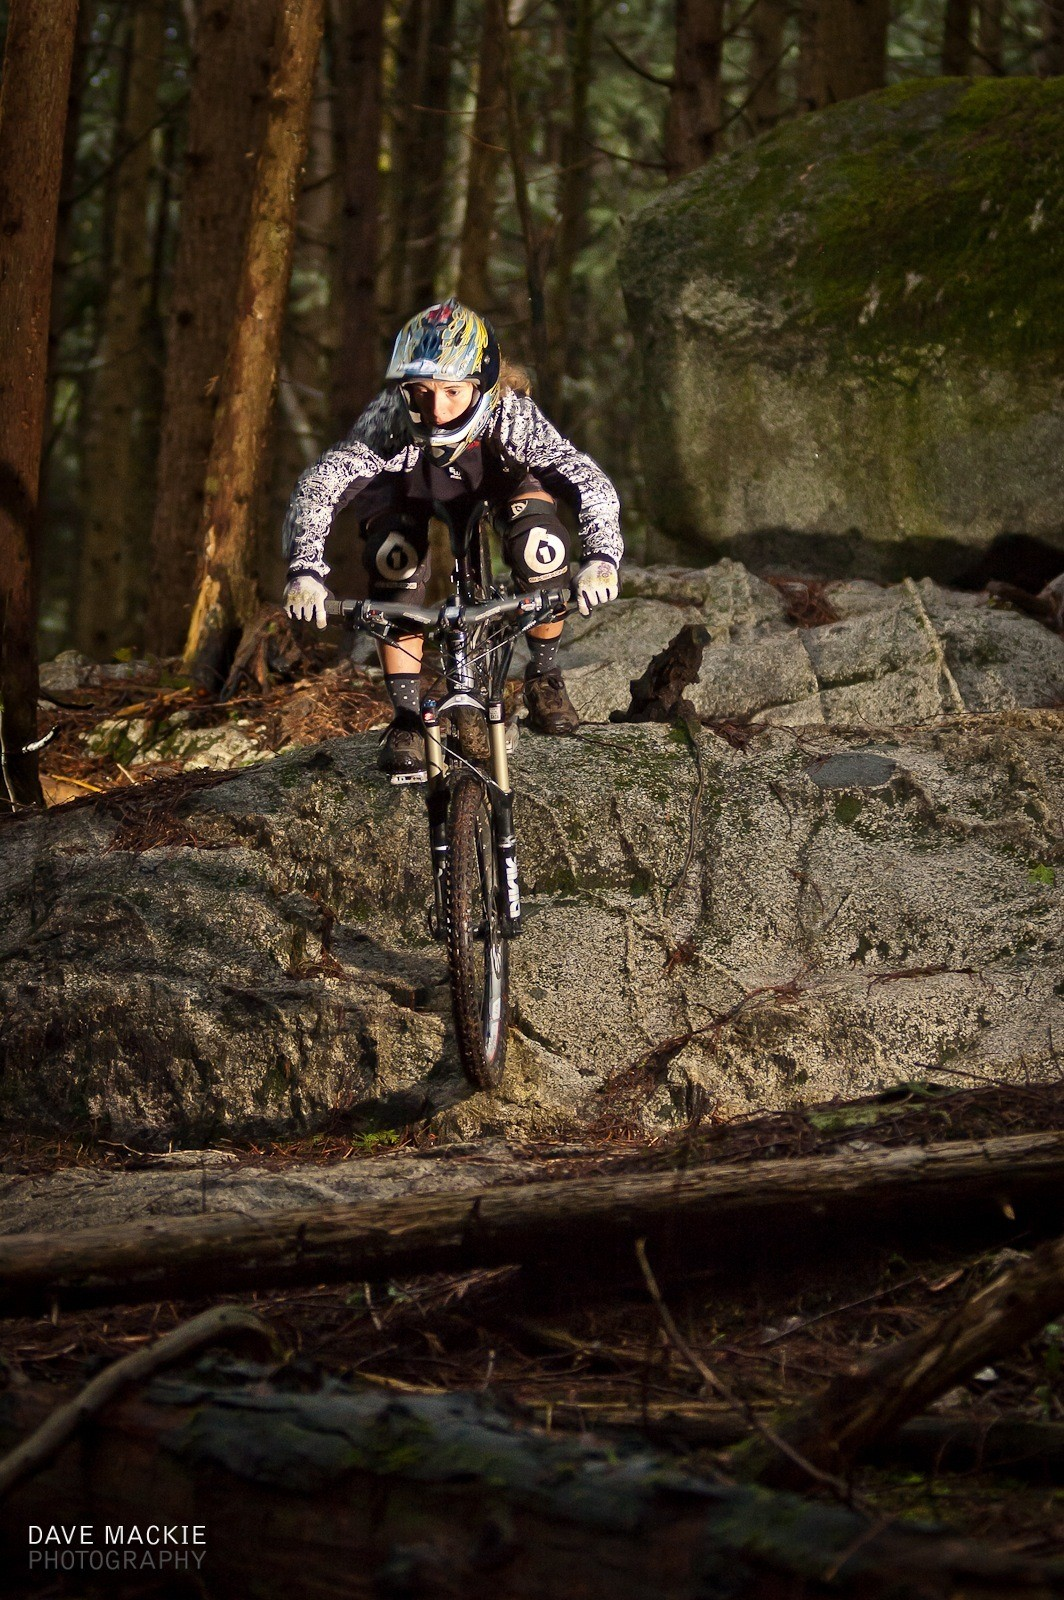 Dirty Jane 1 - sparkplug - Mountain Biking Pictures - Vital MTB